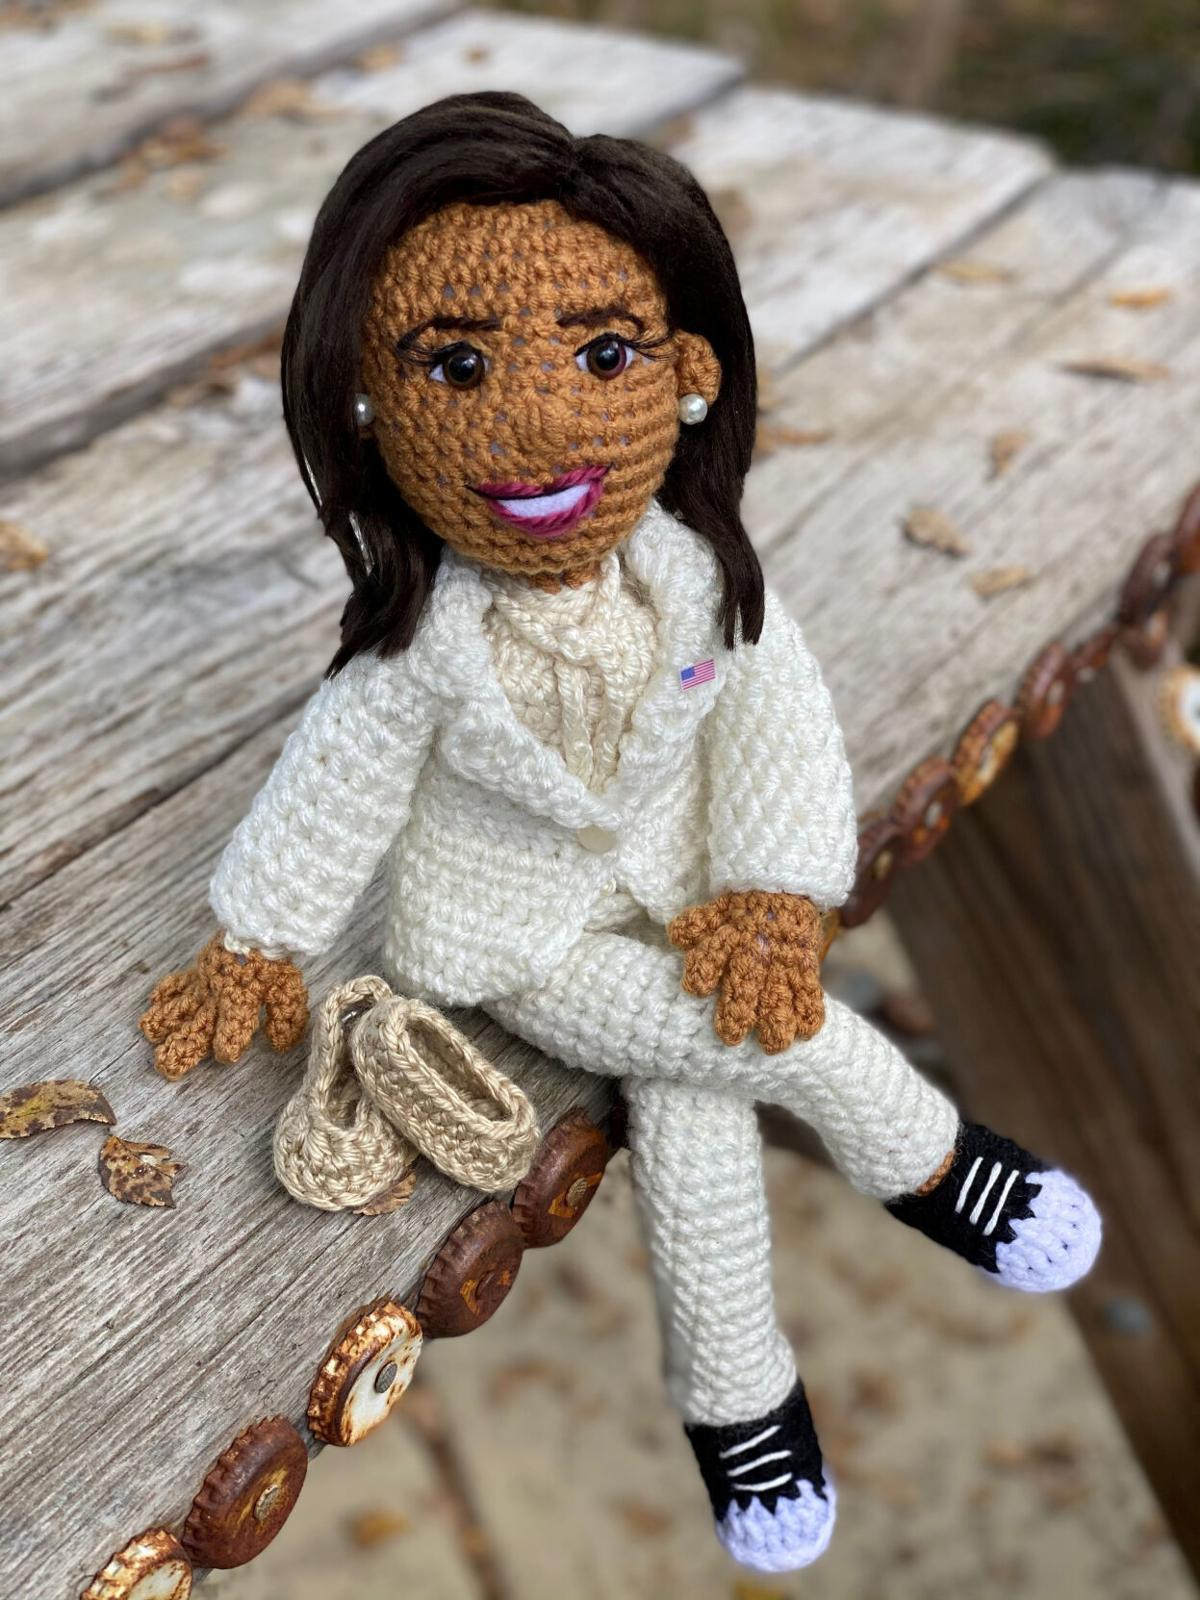 Crocheters celebrate one of their own: Vice President Harris